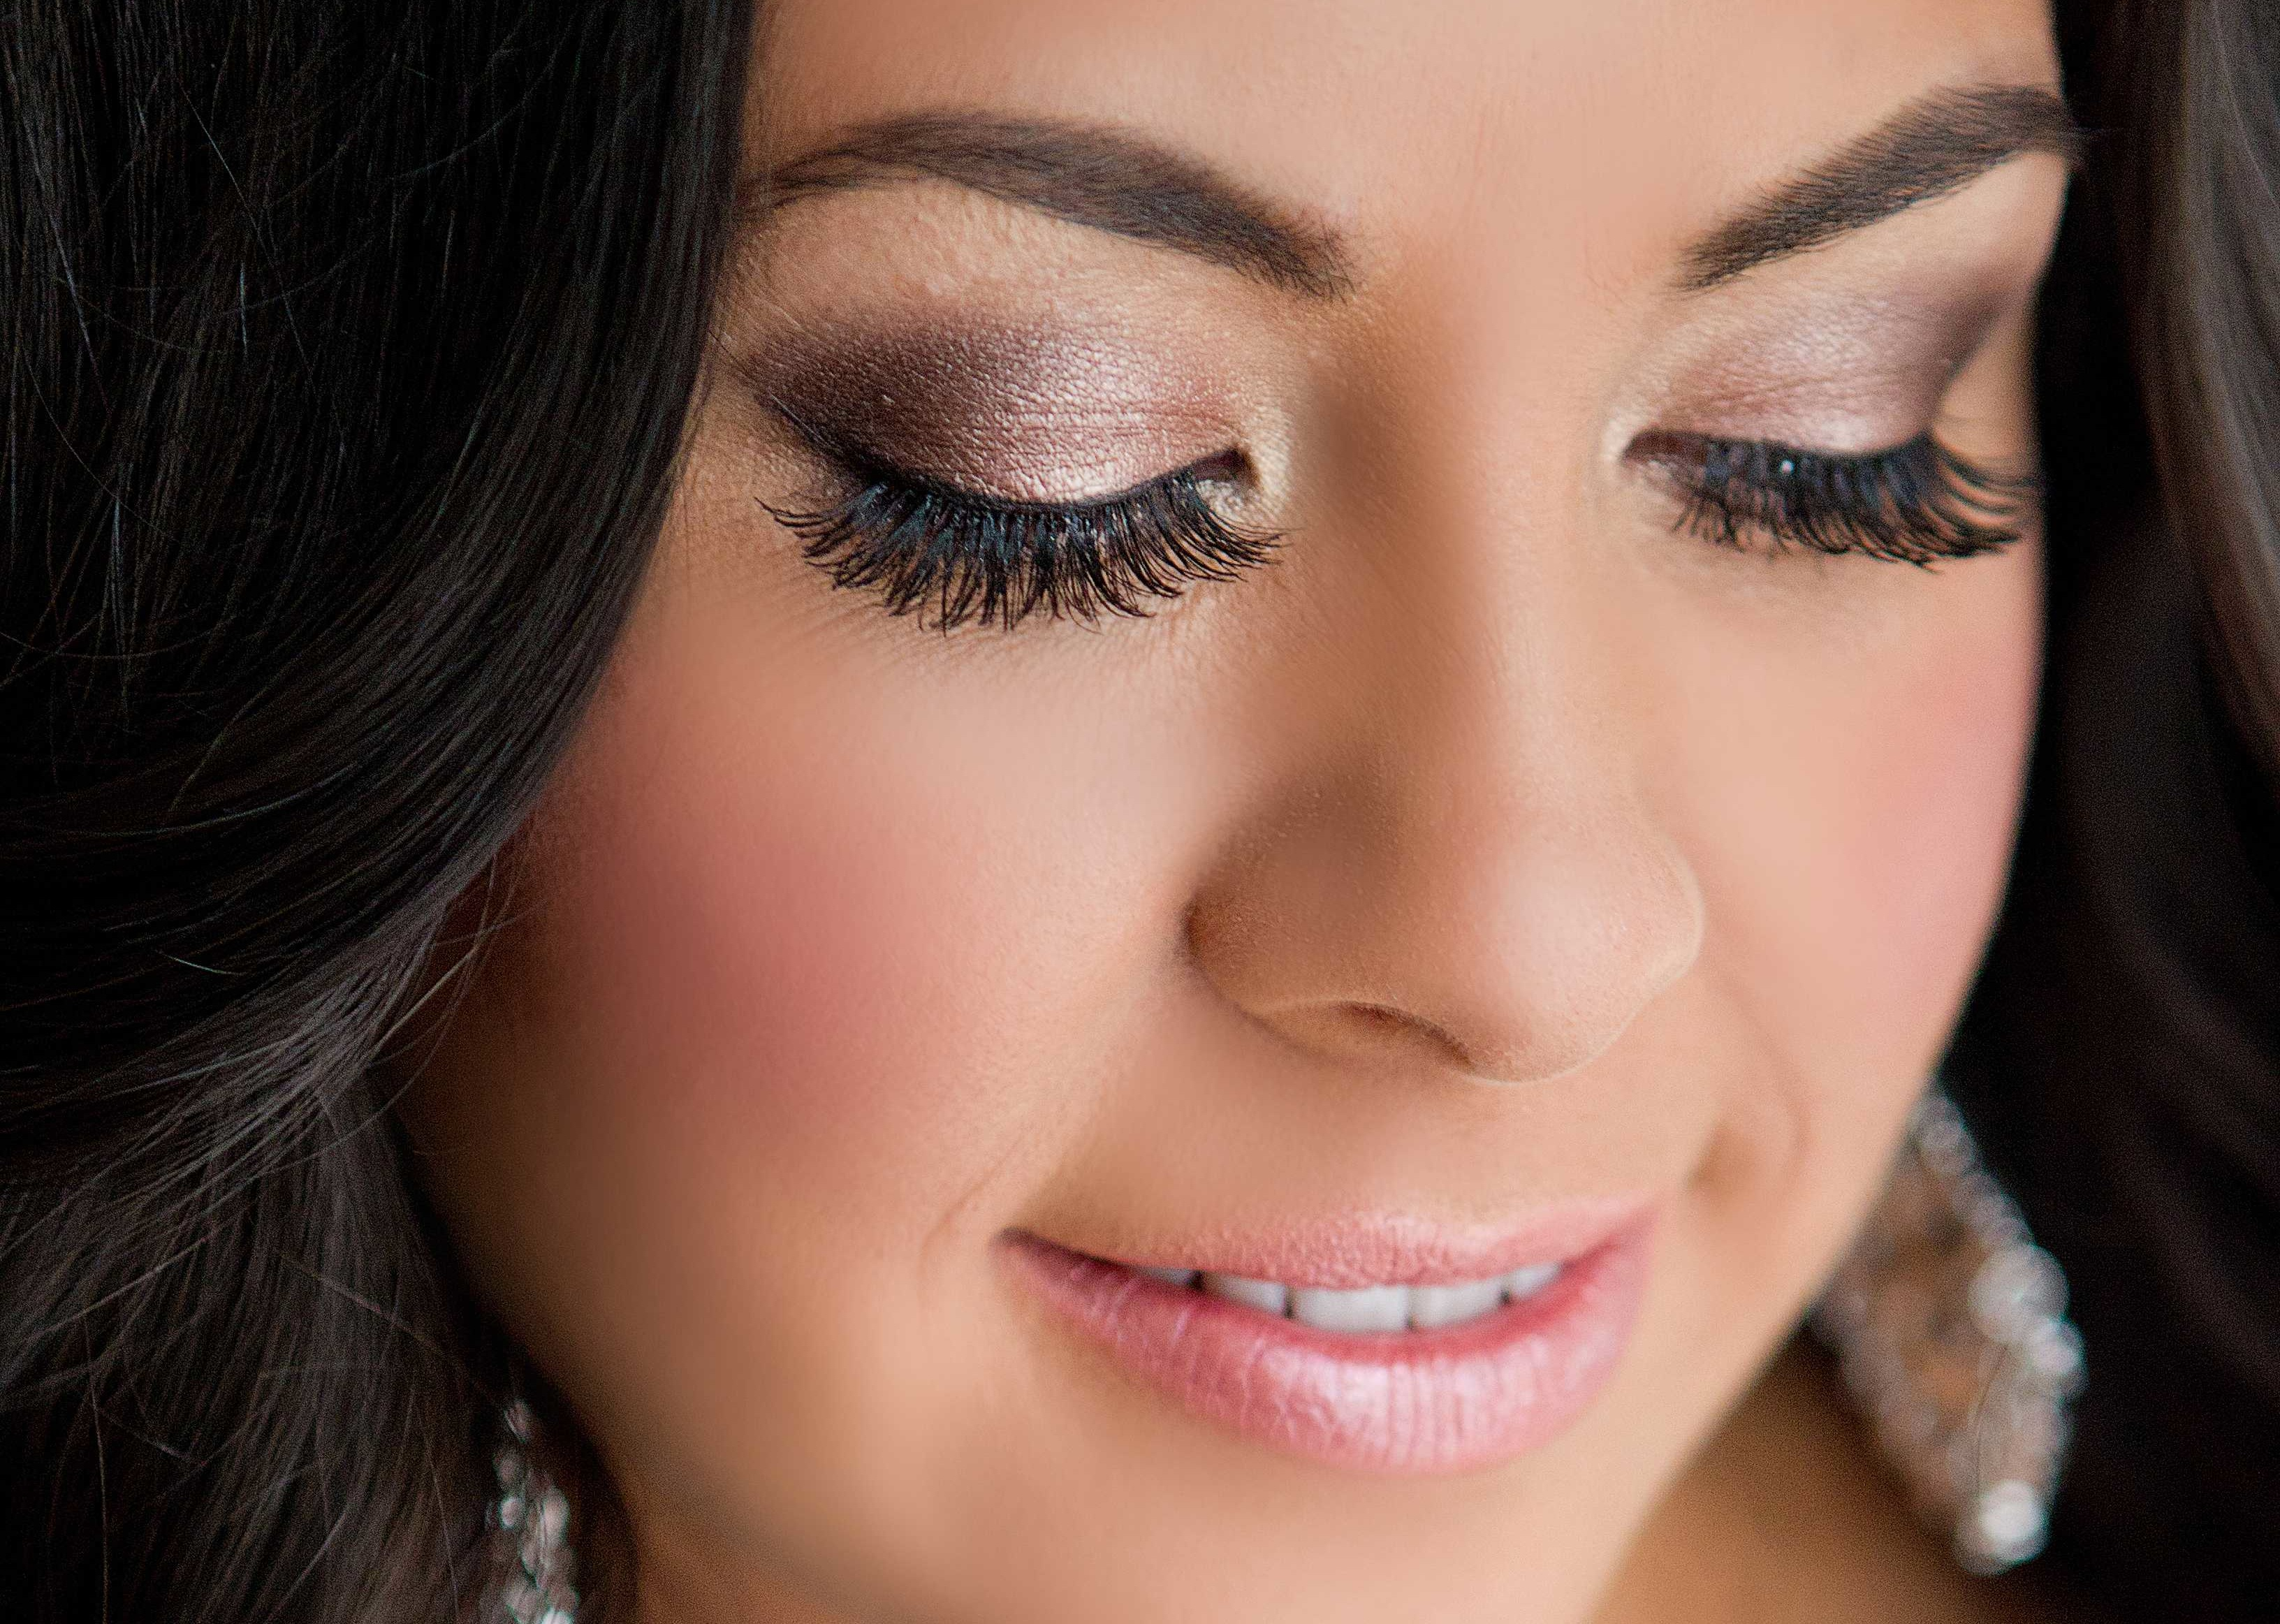 Wedding Makeup For Green Eyes And Brown Hair : Makeup Inspiration Help! - Weddingbee